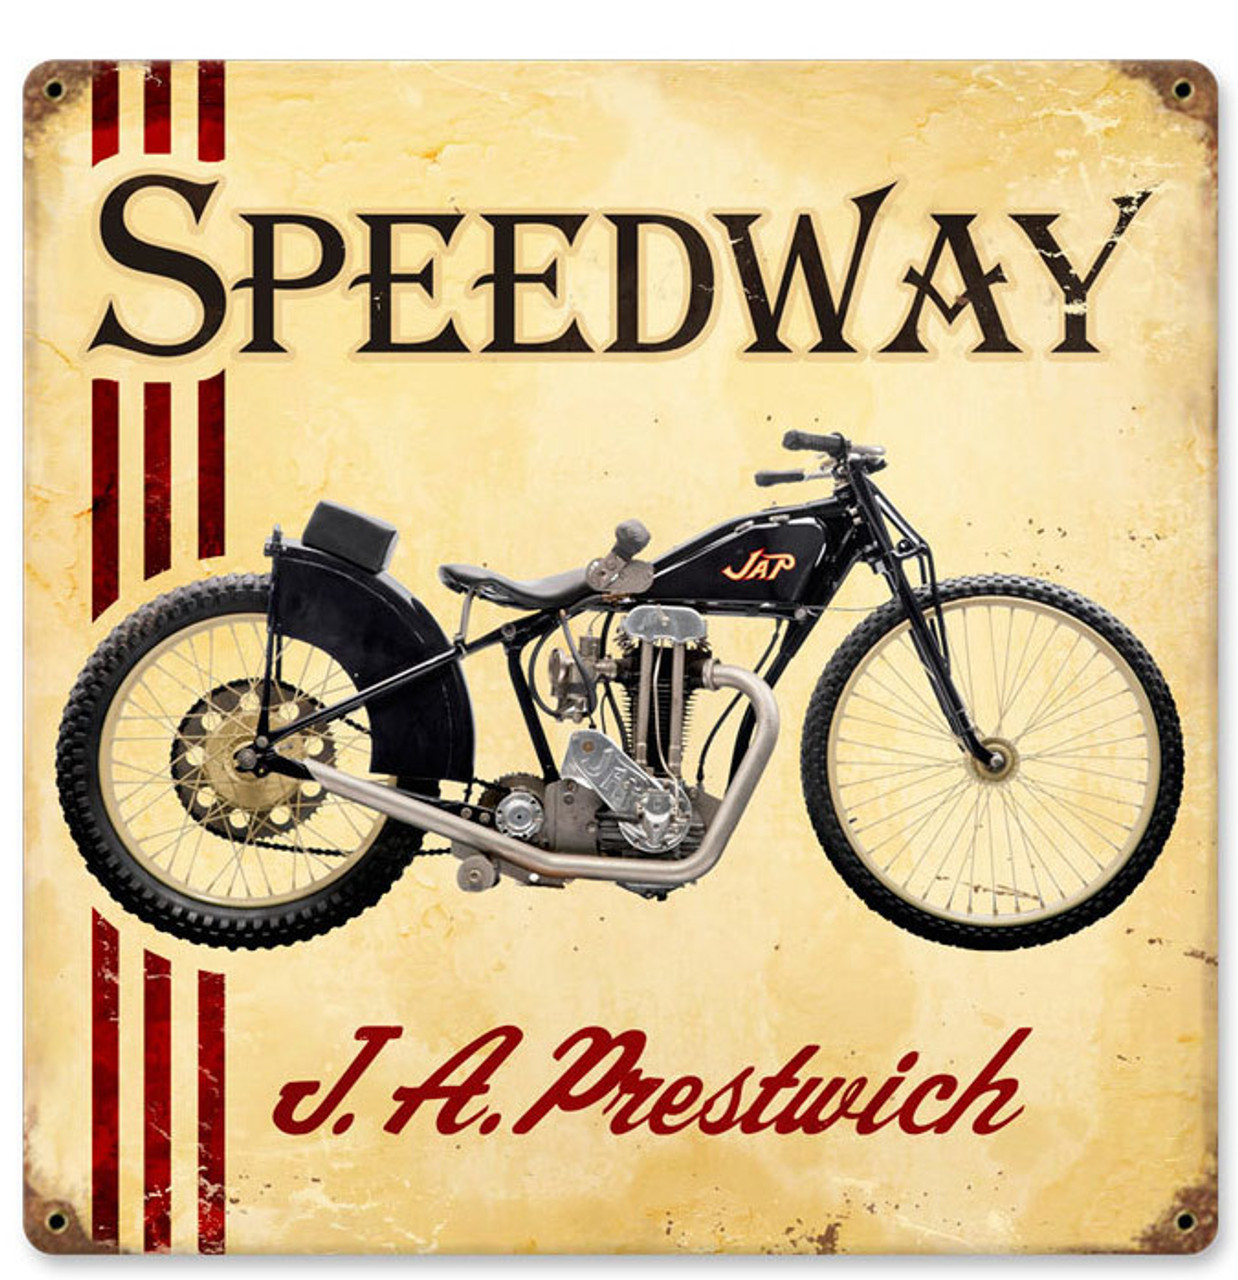 Retro JAP Speedway Metal Sign 12 x 12 Inches